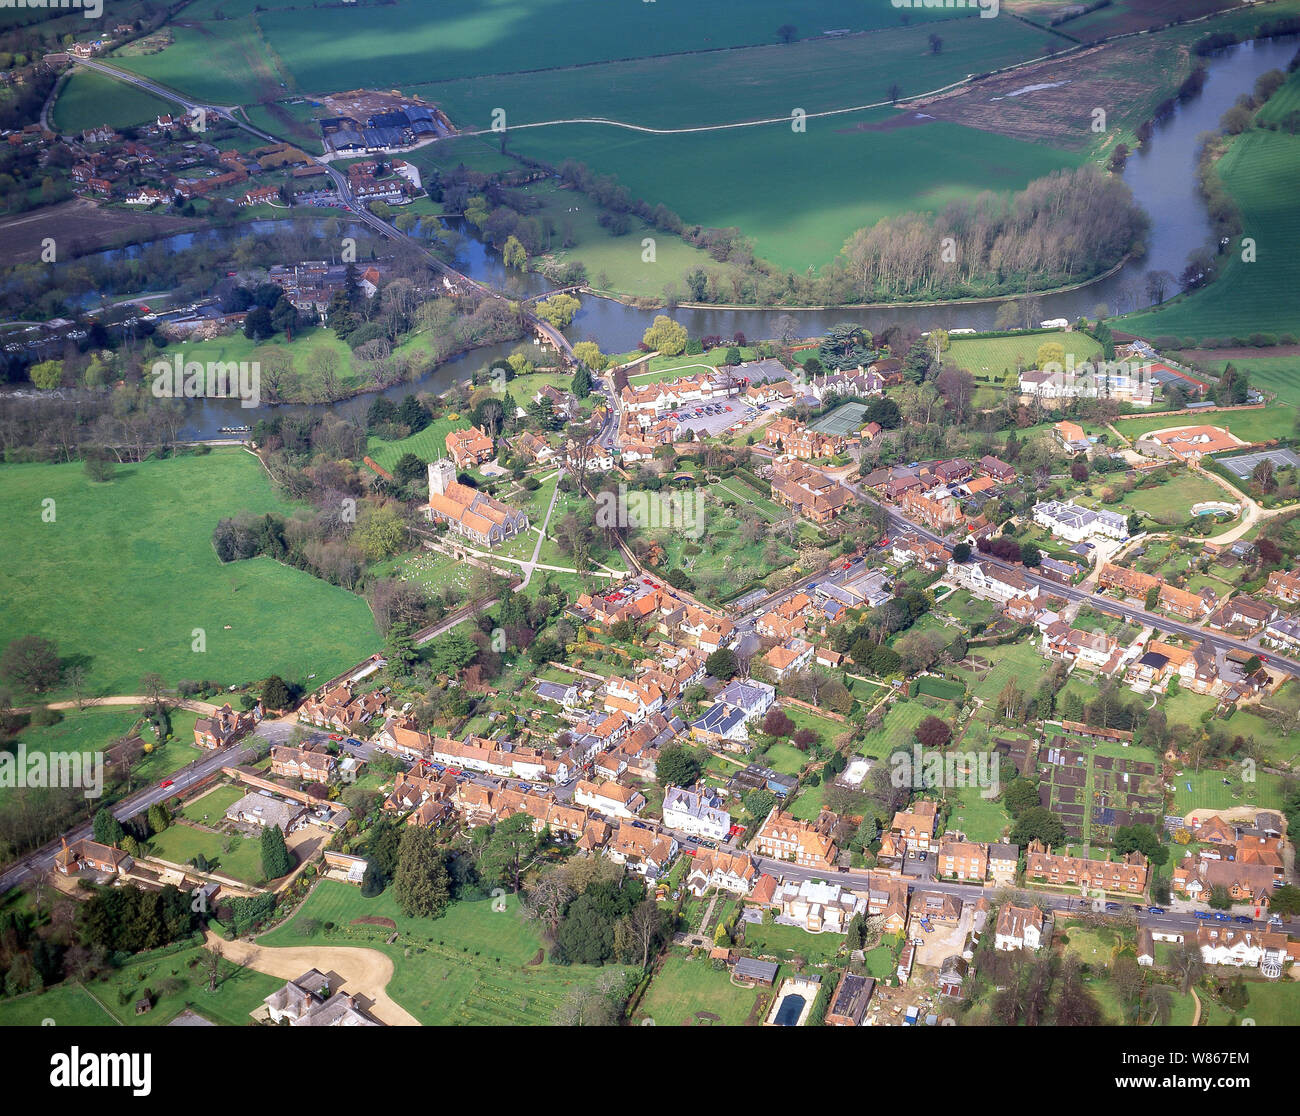 Aerial view of village and River Thames, Sonning, Berkshire, England, United Kingdom Stock Photo